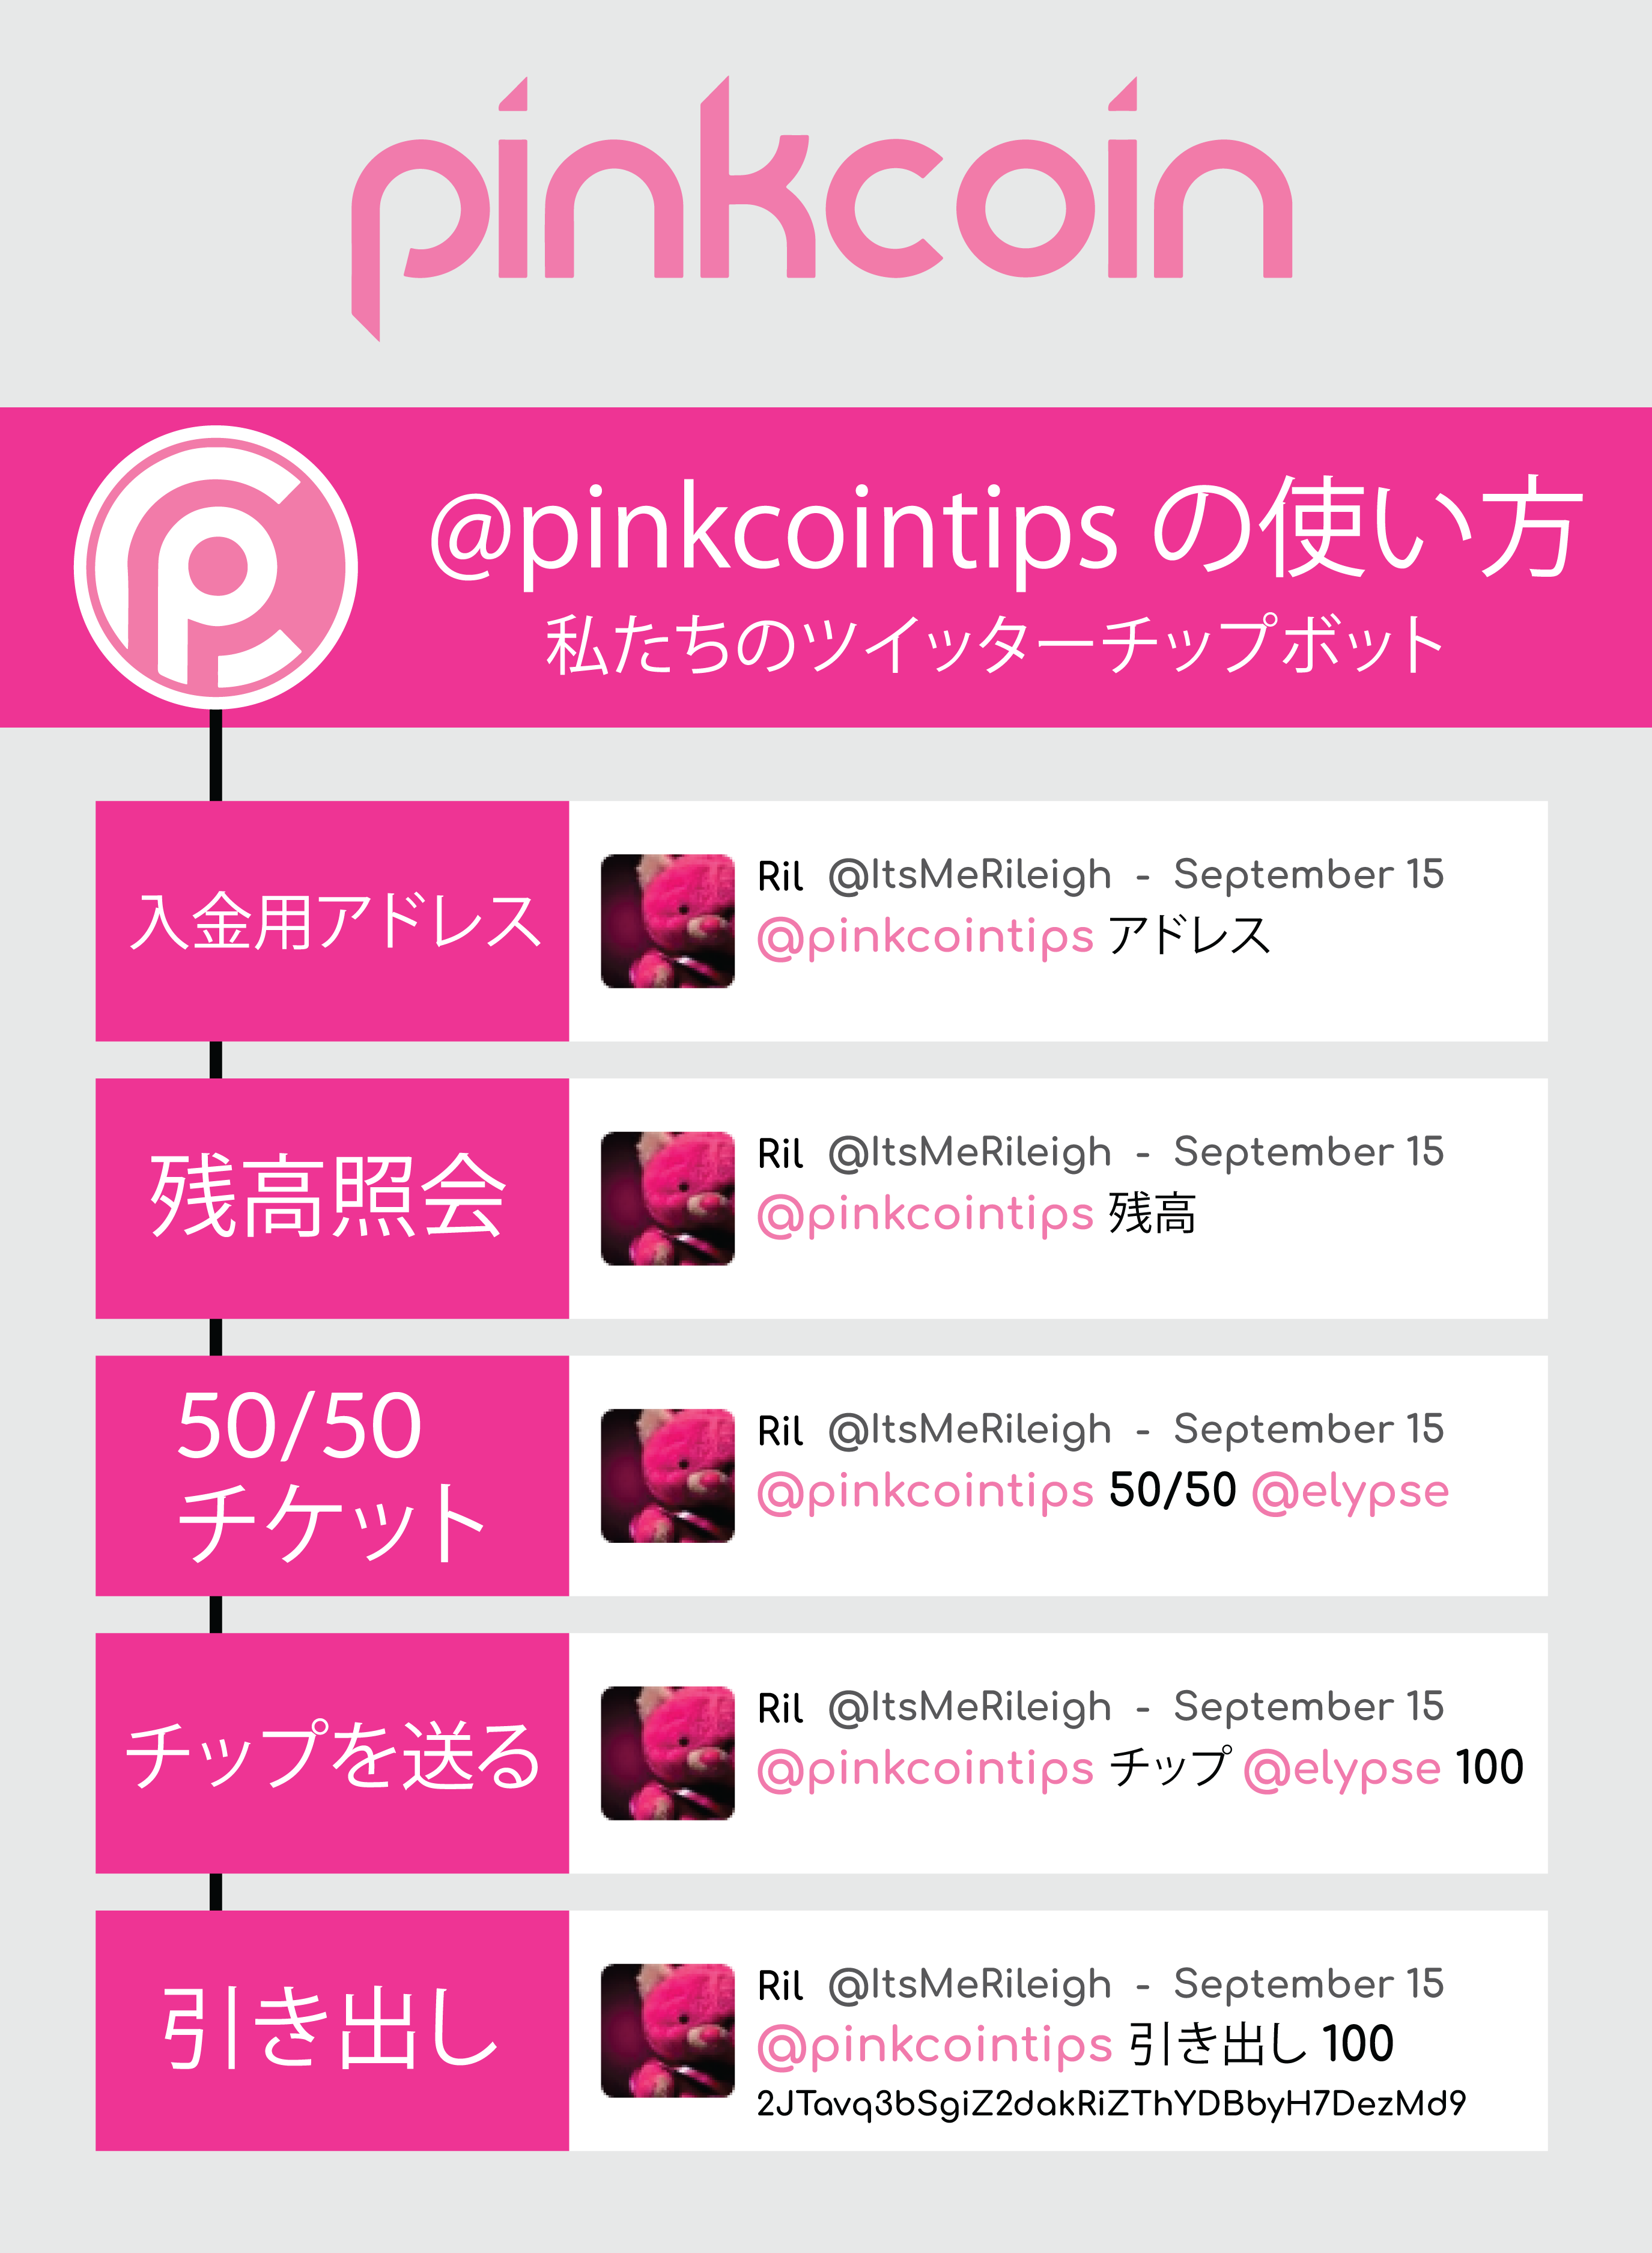 @pinkcointips commands